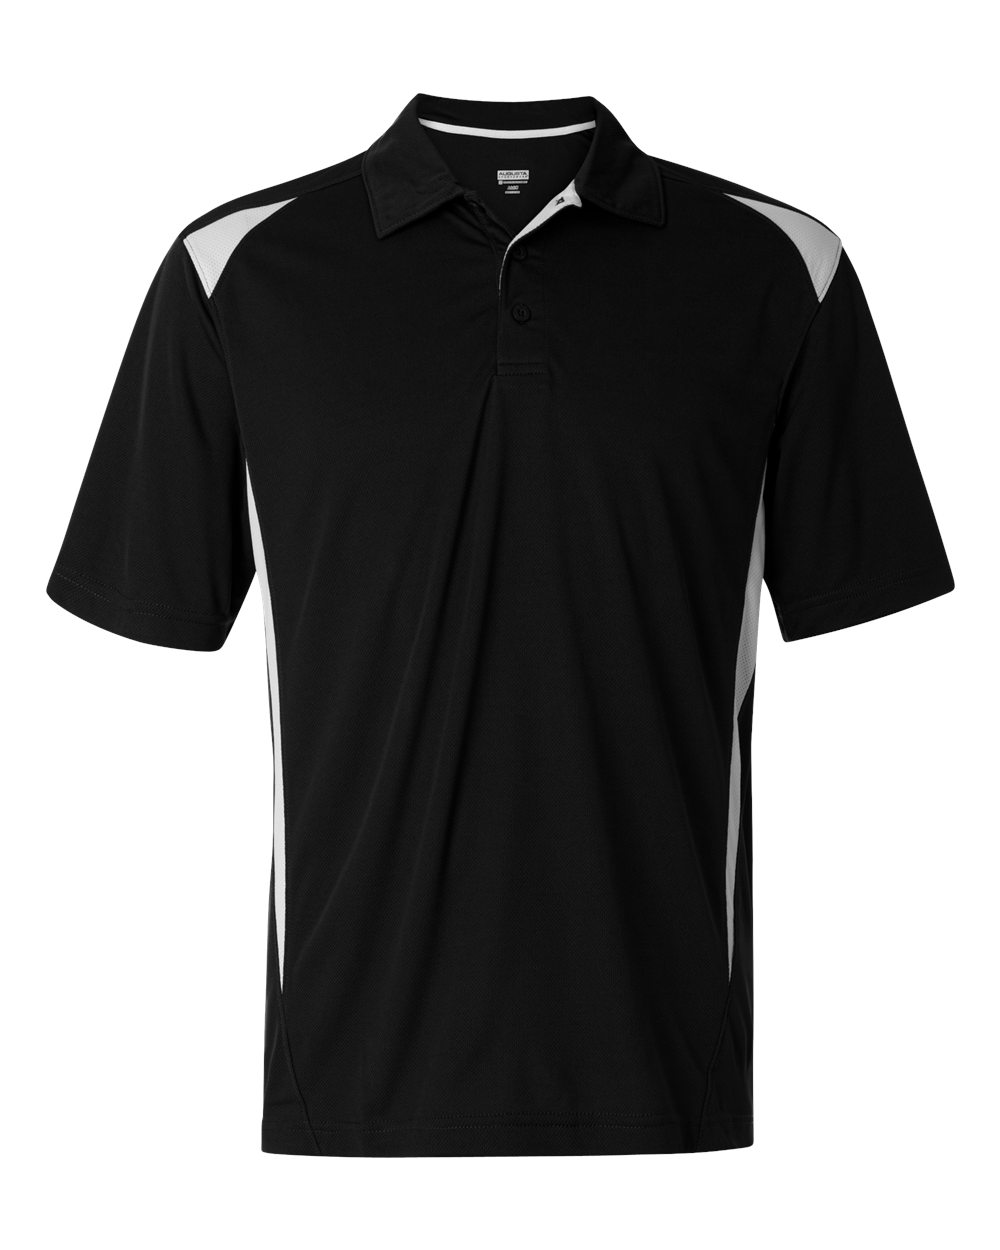 Augusta-Mens-Sportswear-Two-Tone-Premier-Sport-Shirt-5012-up-to-3XL thumbnail 6